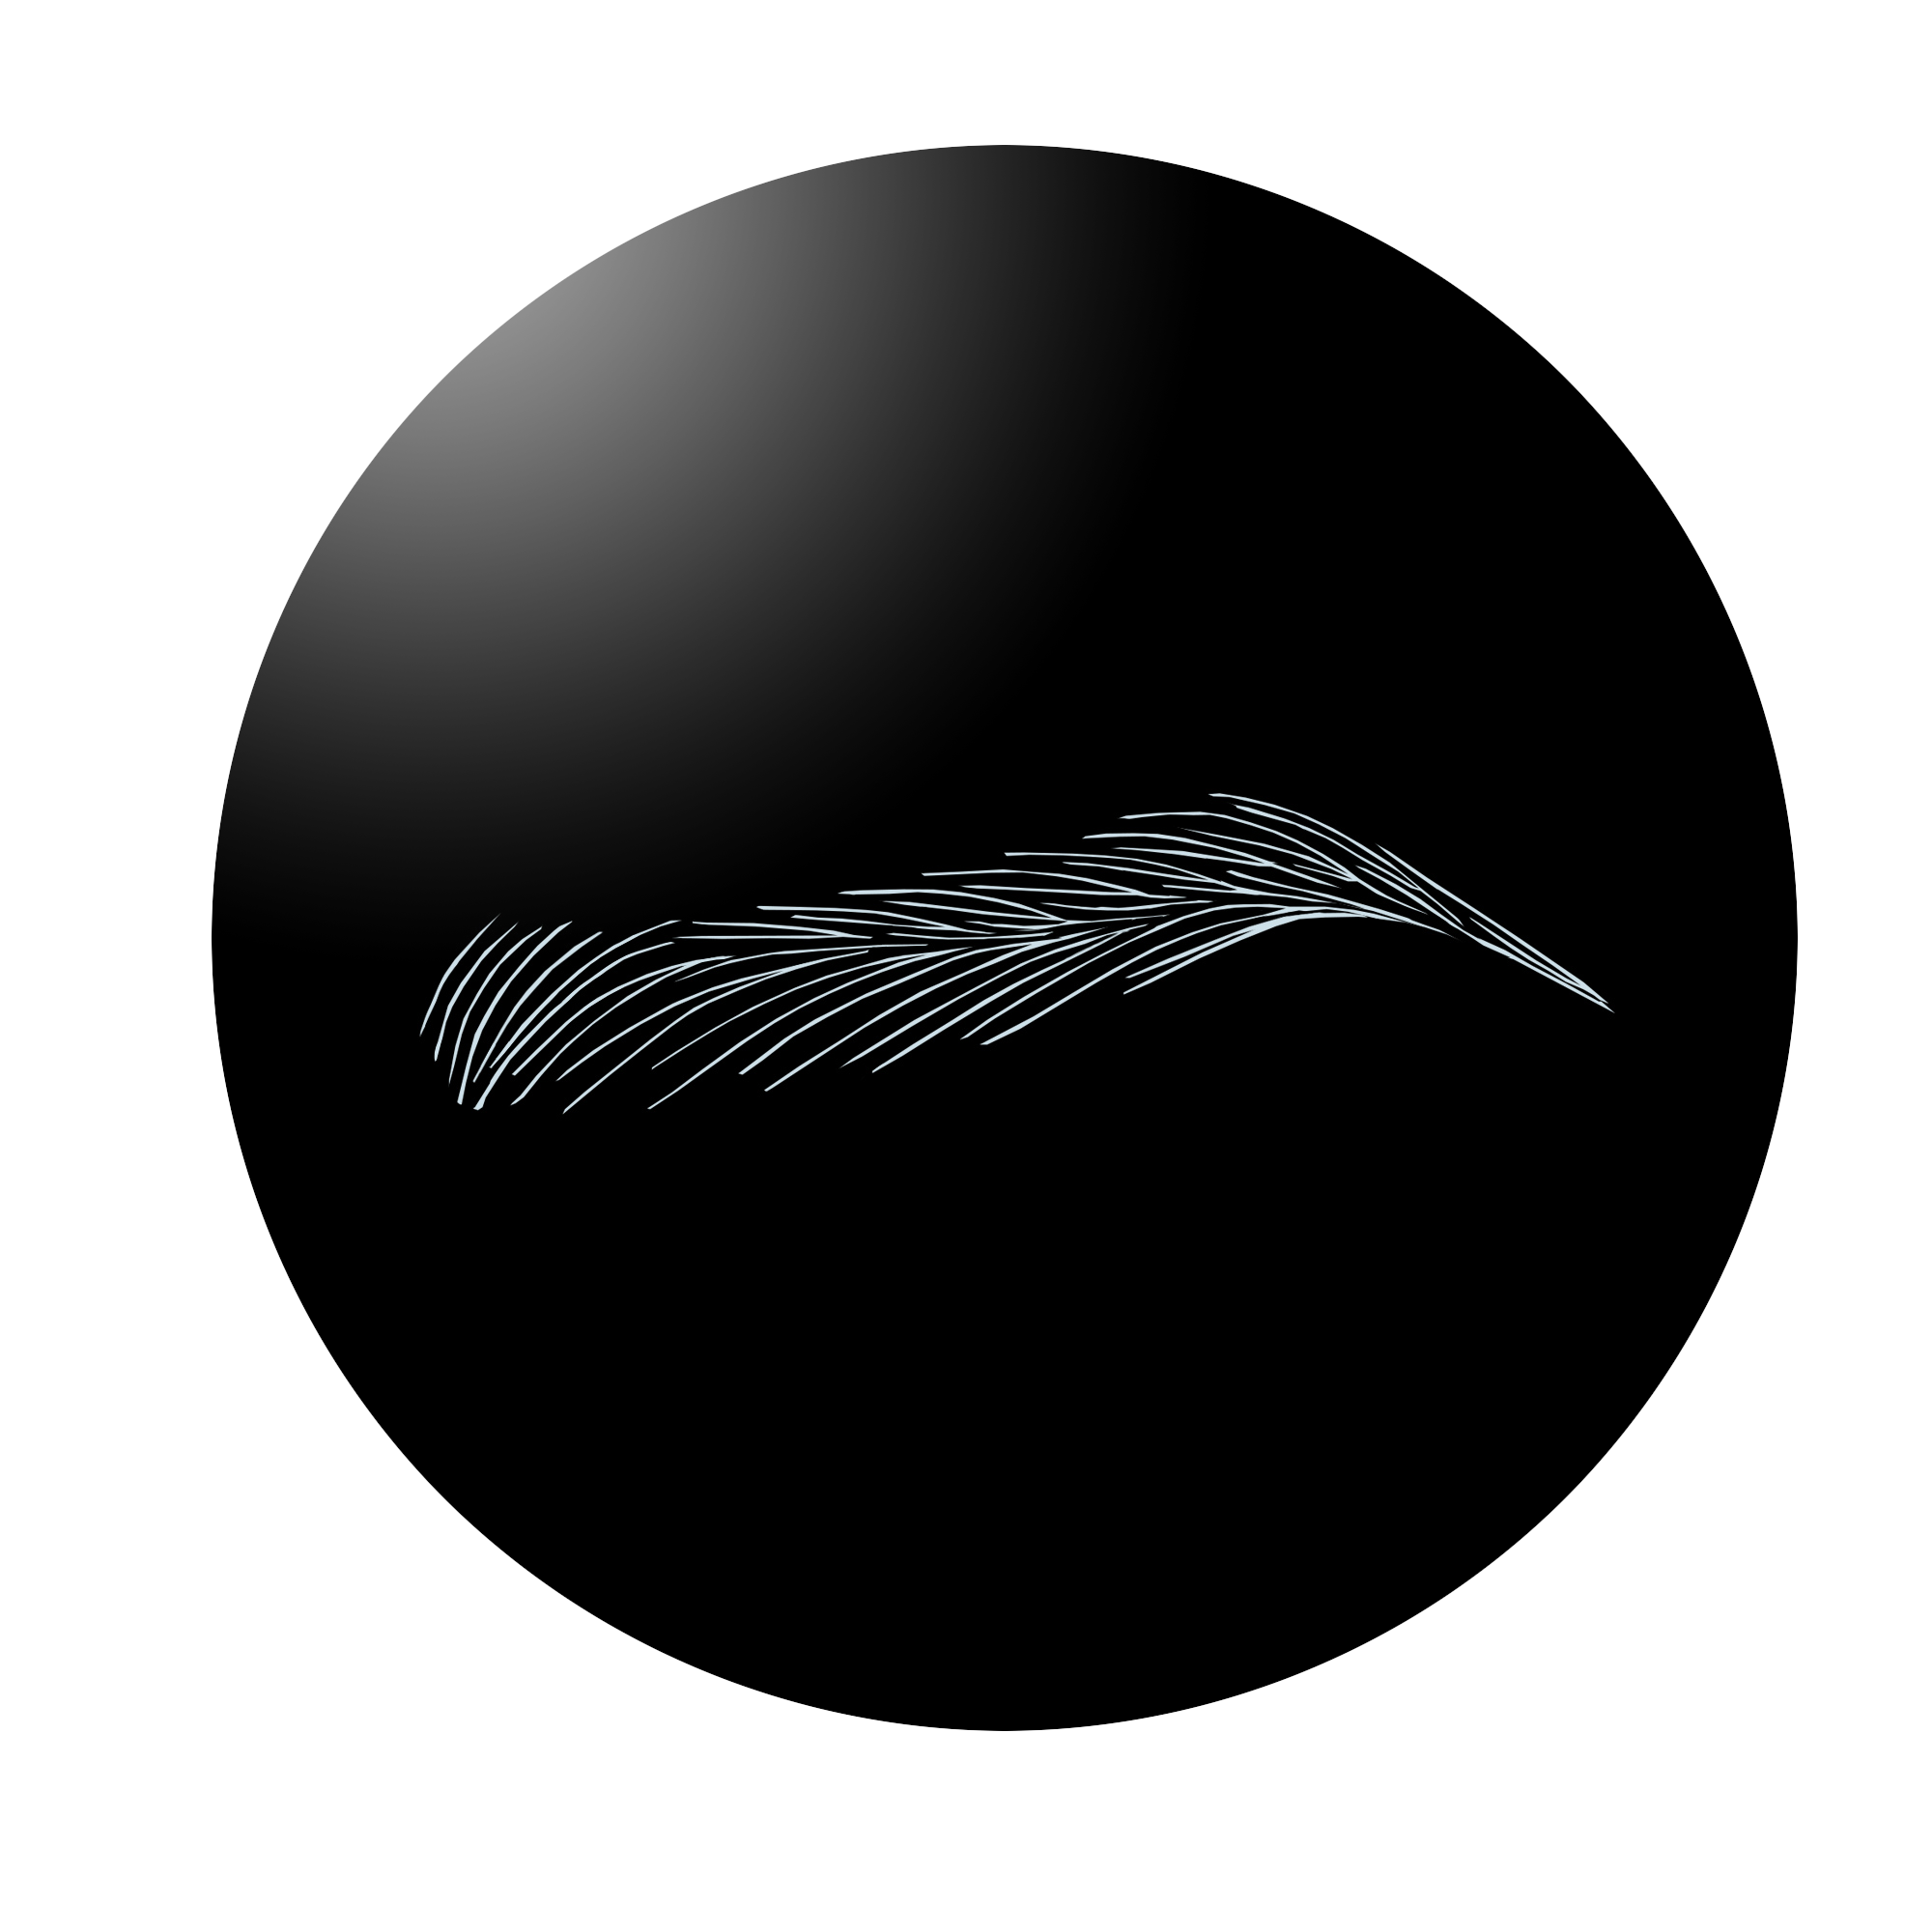 SharpBrows has created Europe ONE Brow pattern that is the most widely used brow pattern in Europe. It has become an industry standard for many artists with different backgrounds.